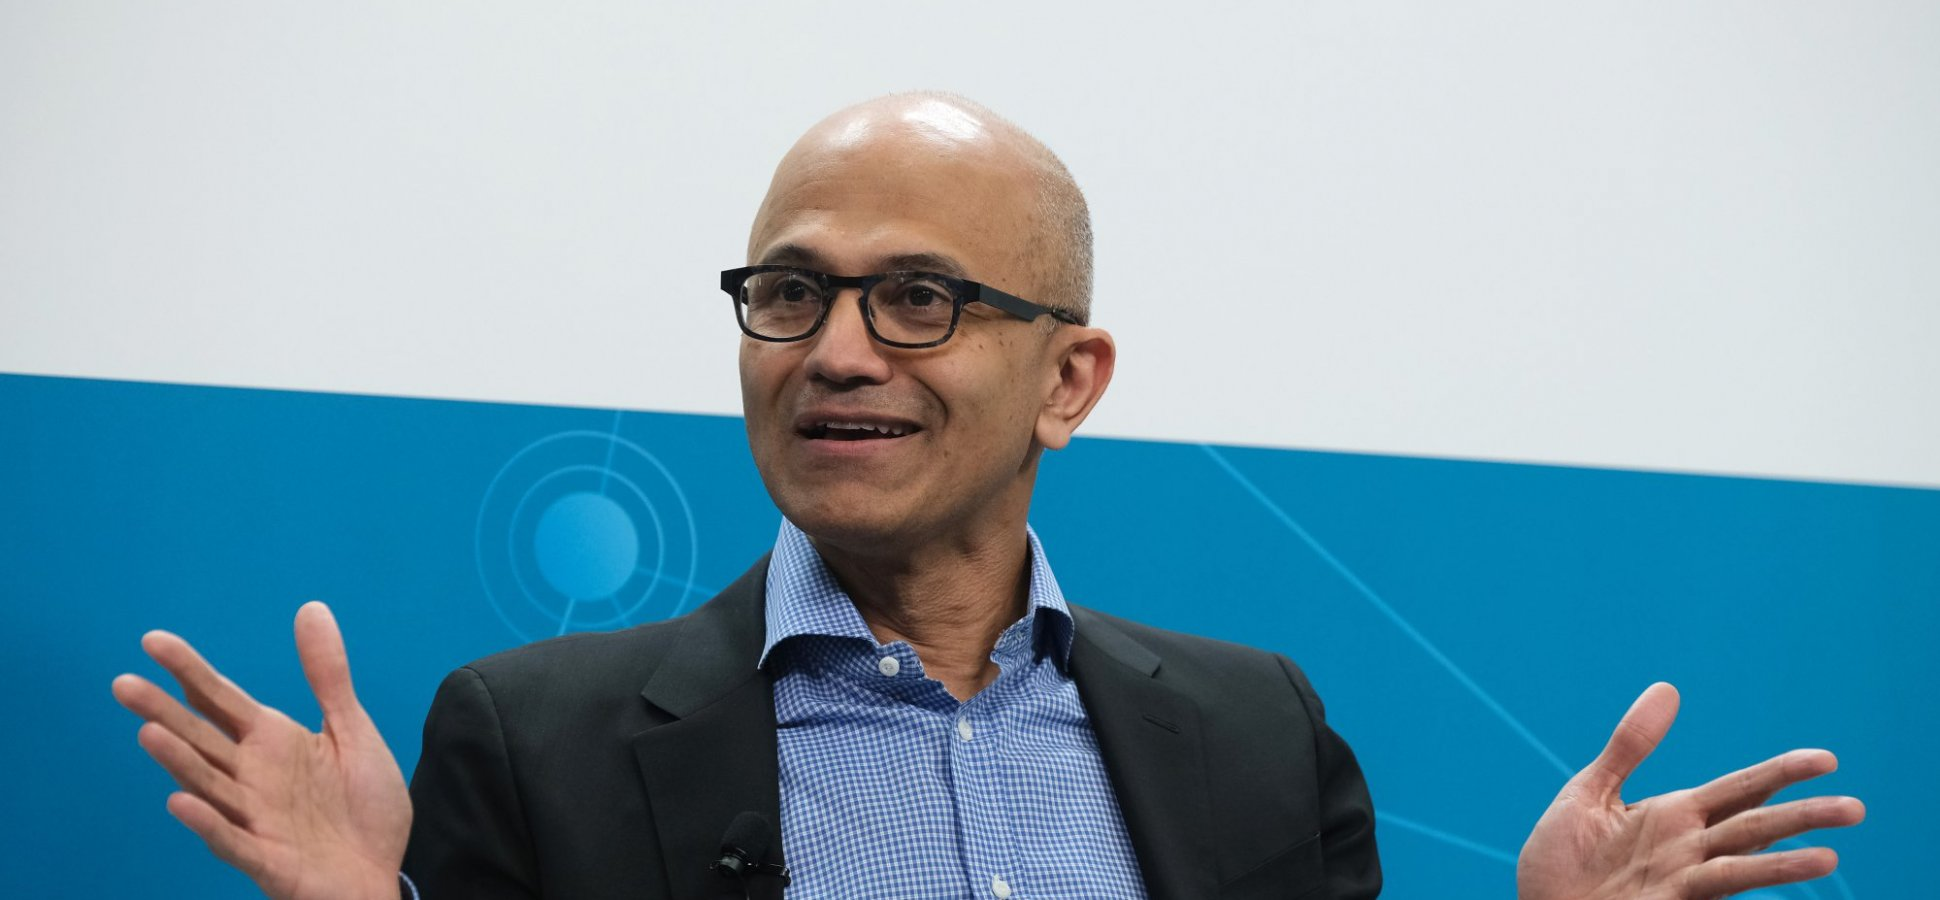 Amazon Is Challenging Microsoft's $10 Billion Pentagon Contract, but a Much Bigger Battle Between The Tech Giants Is Just Getting Started